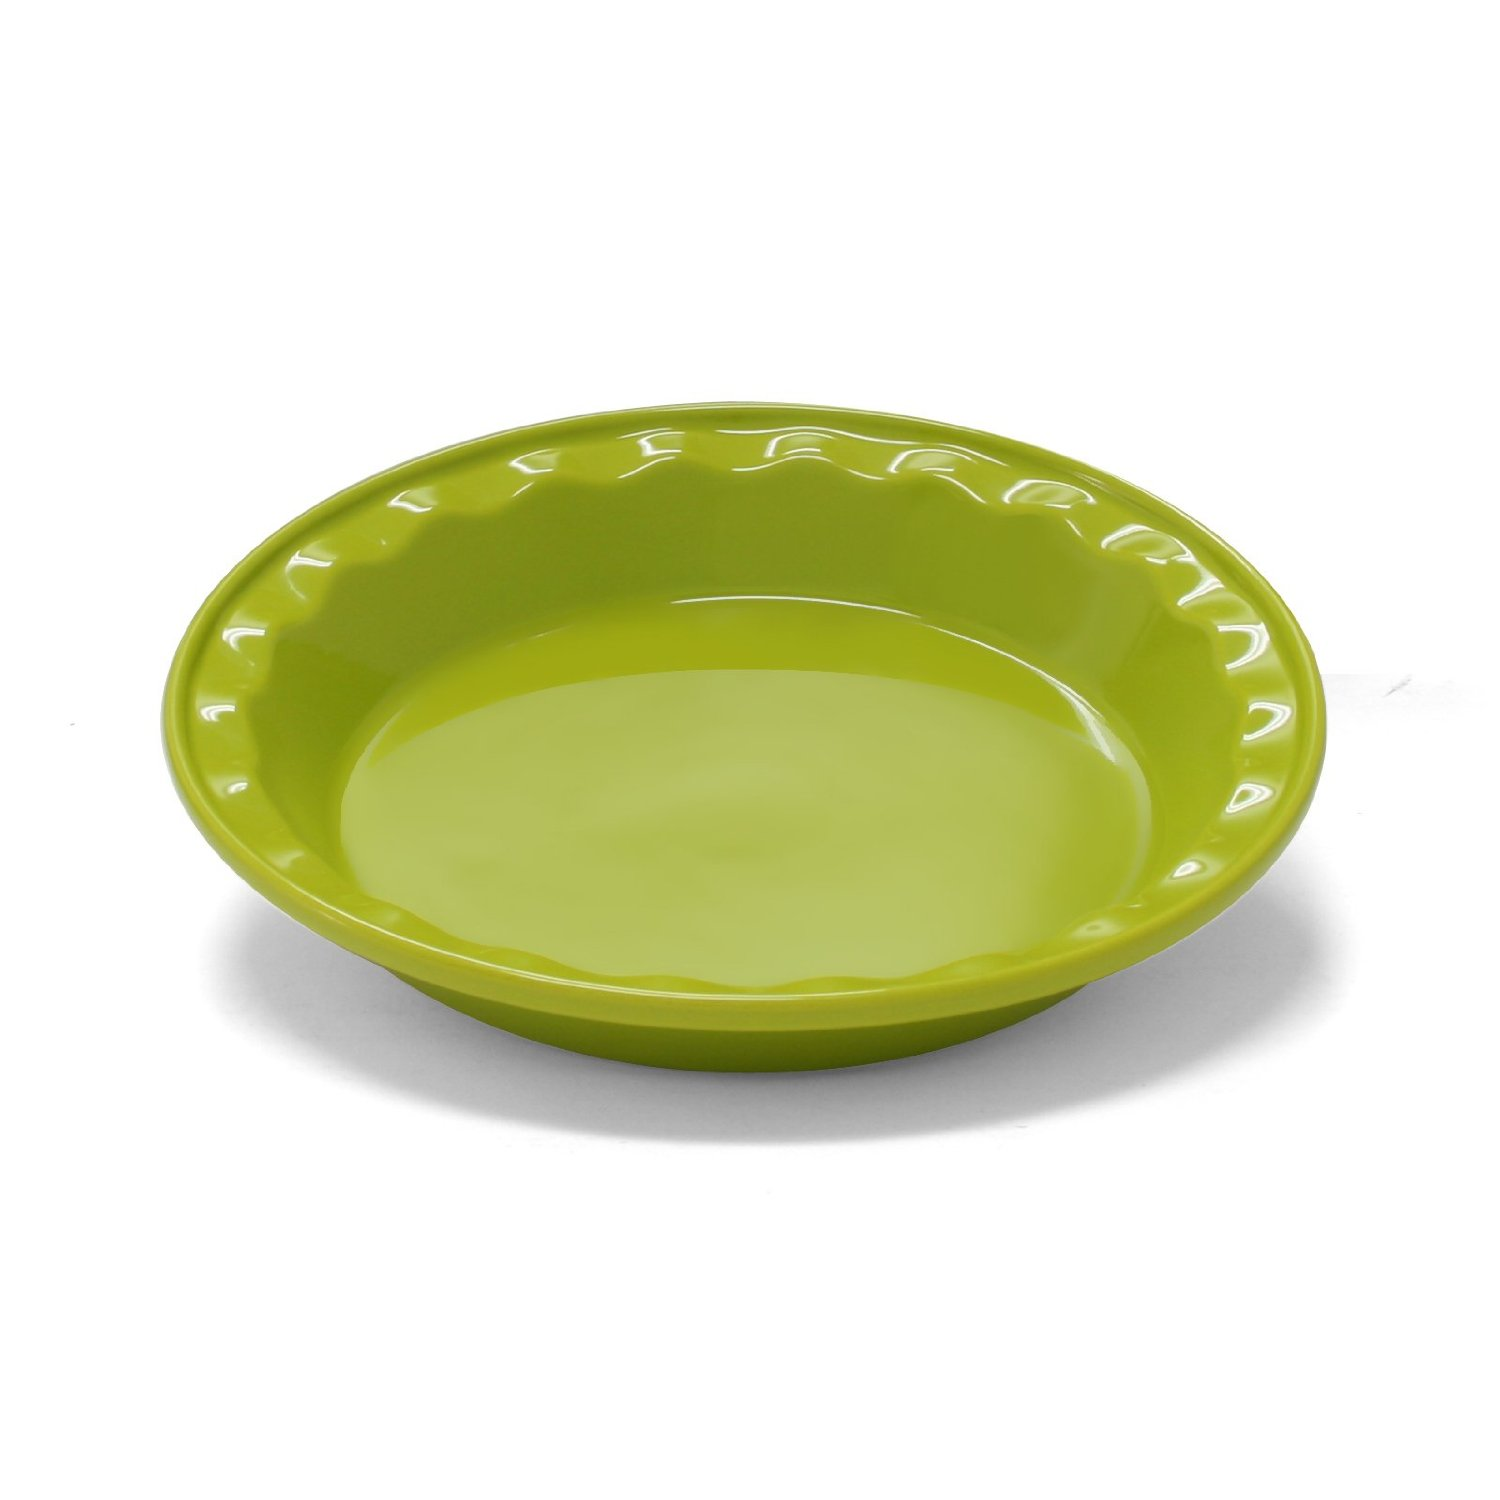 Chantal Easy as Pie Lime Green Stoneware Pie Pan, 9 Inch